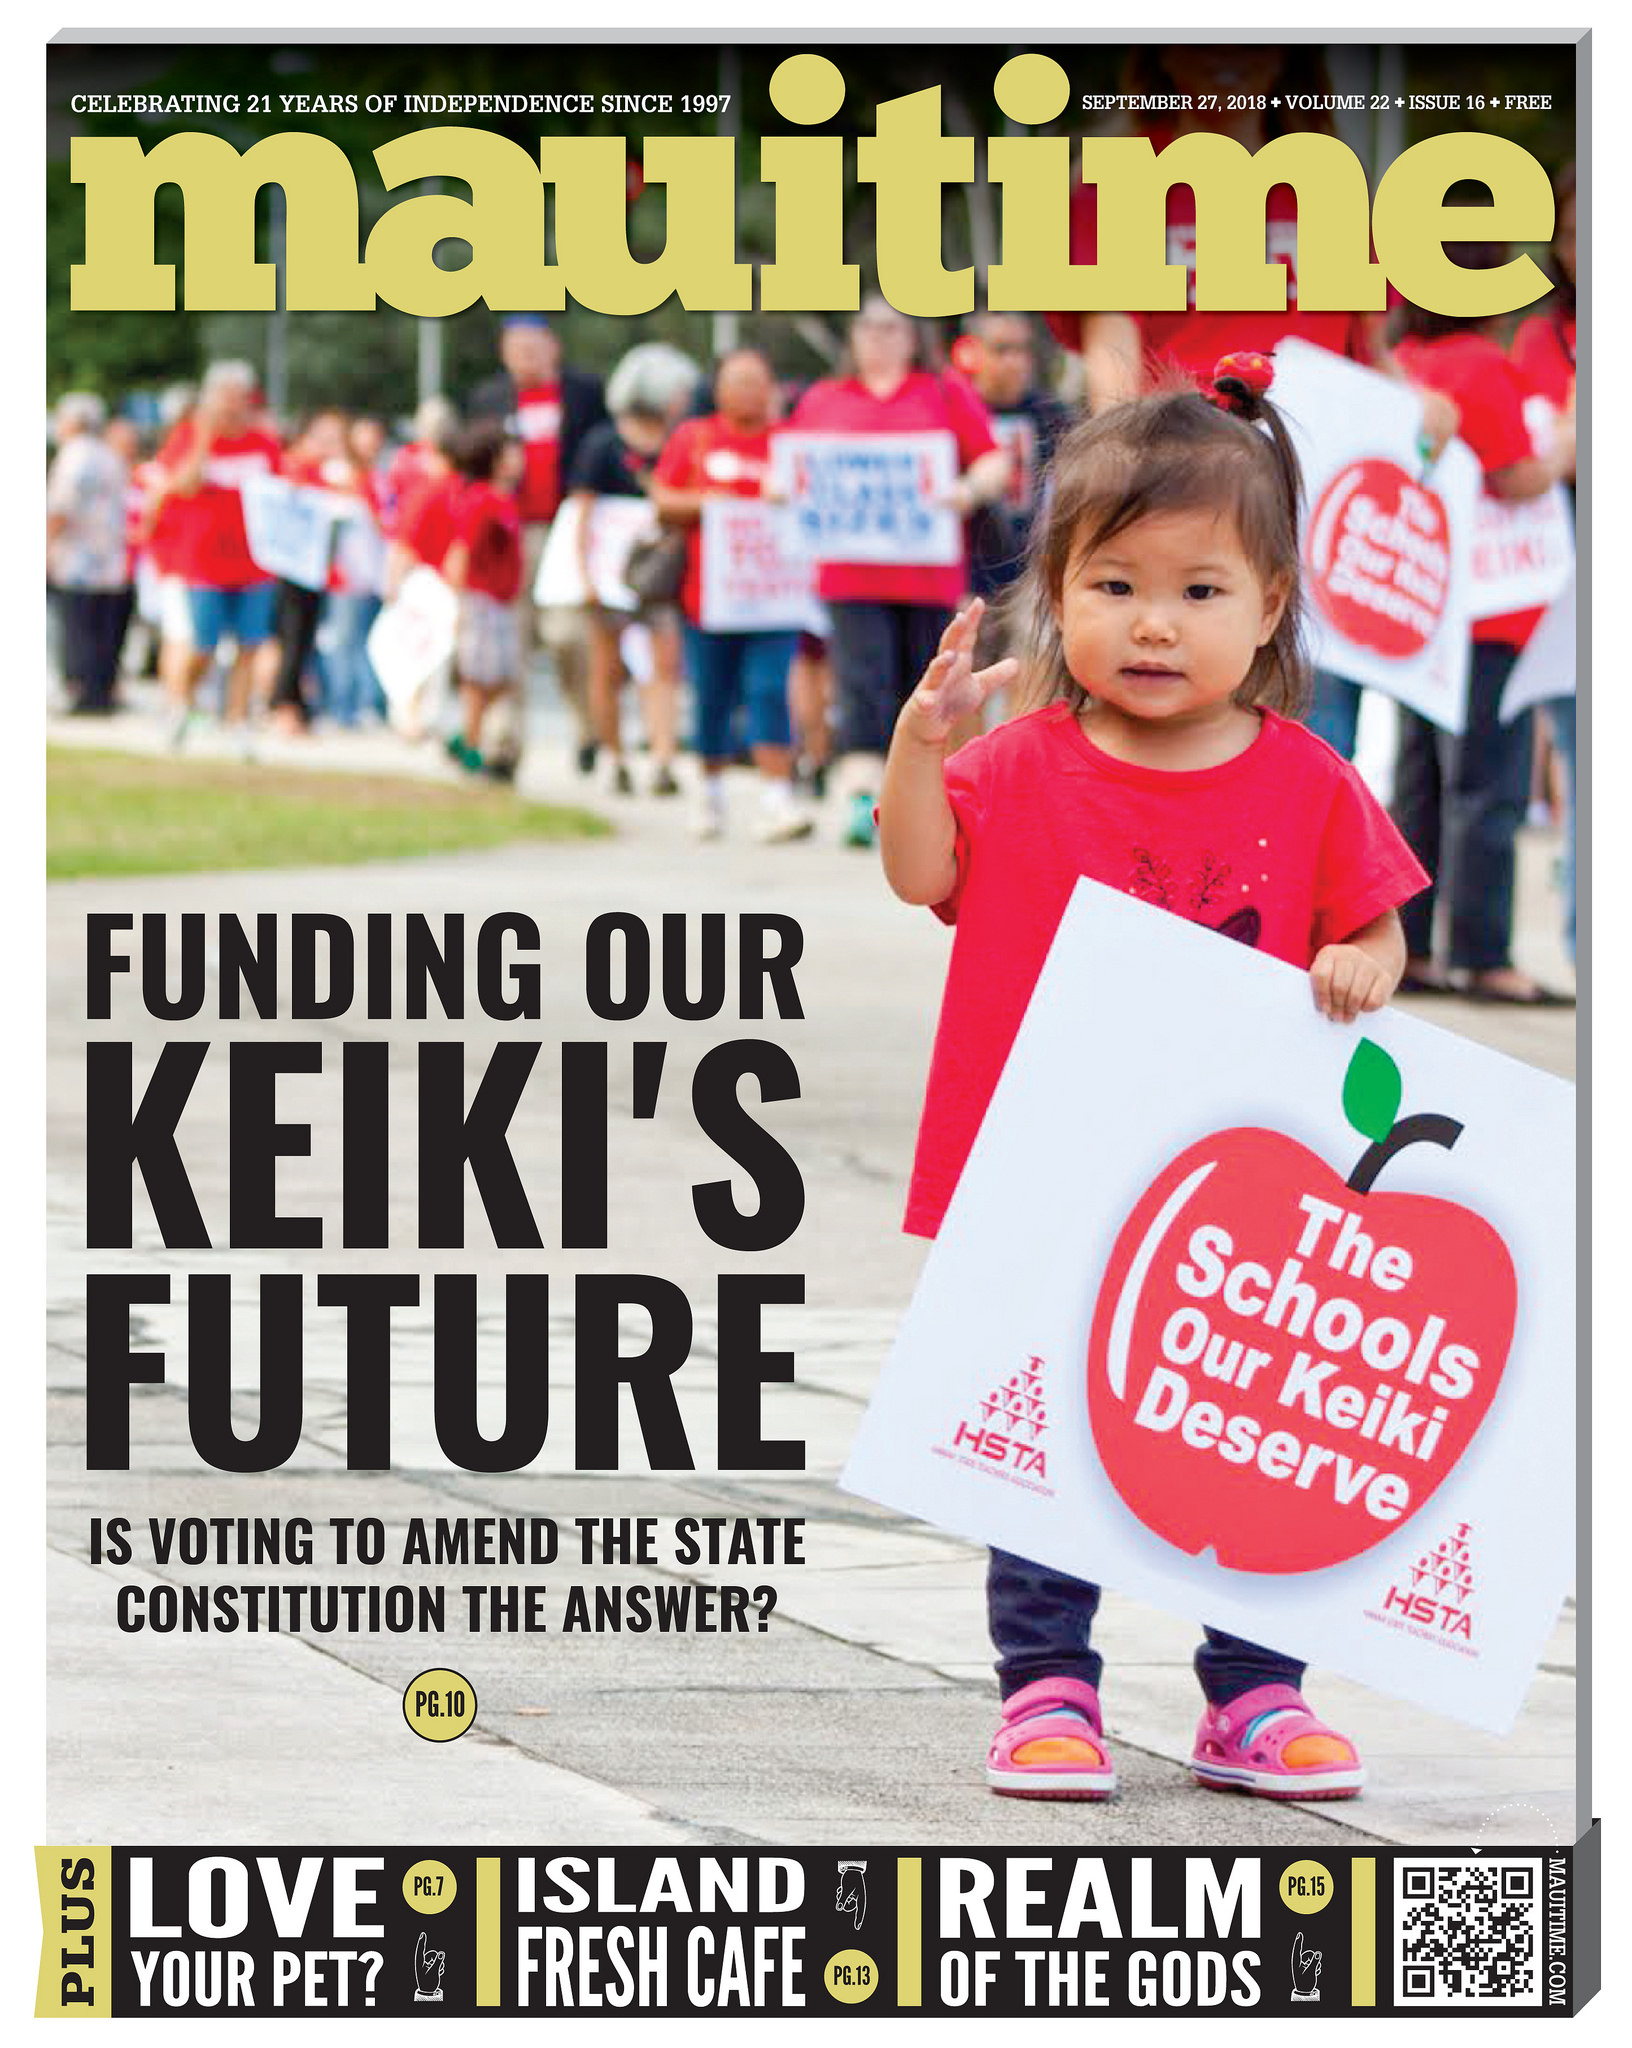 Funding Our Keiki S Future Is A Constitutional Amendment The Answer